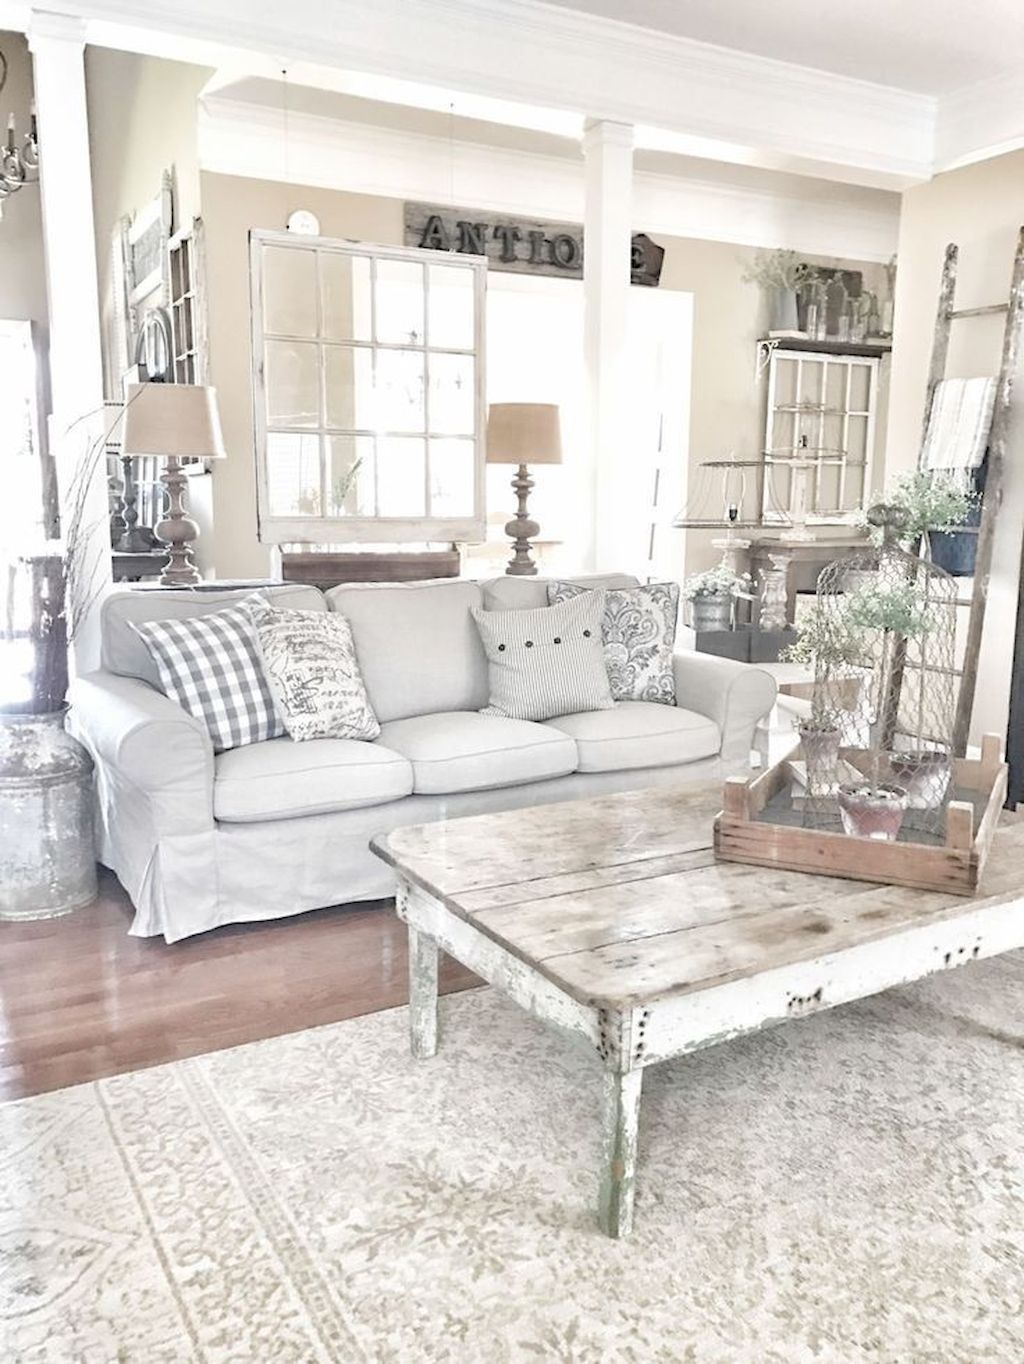 Farmhouse Living Room Design Ideas Remodels Photos: 38 Cozy Modern Farmhouse Living Room Decor Ideas